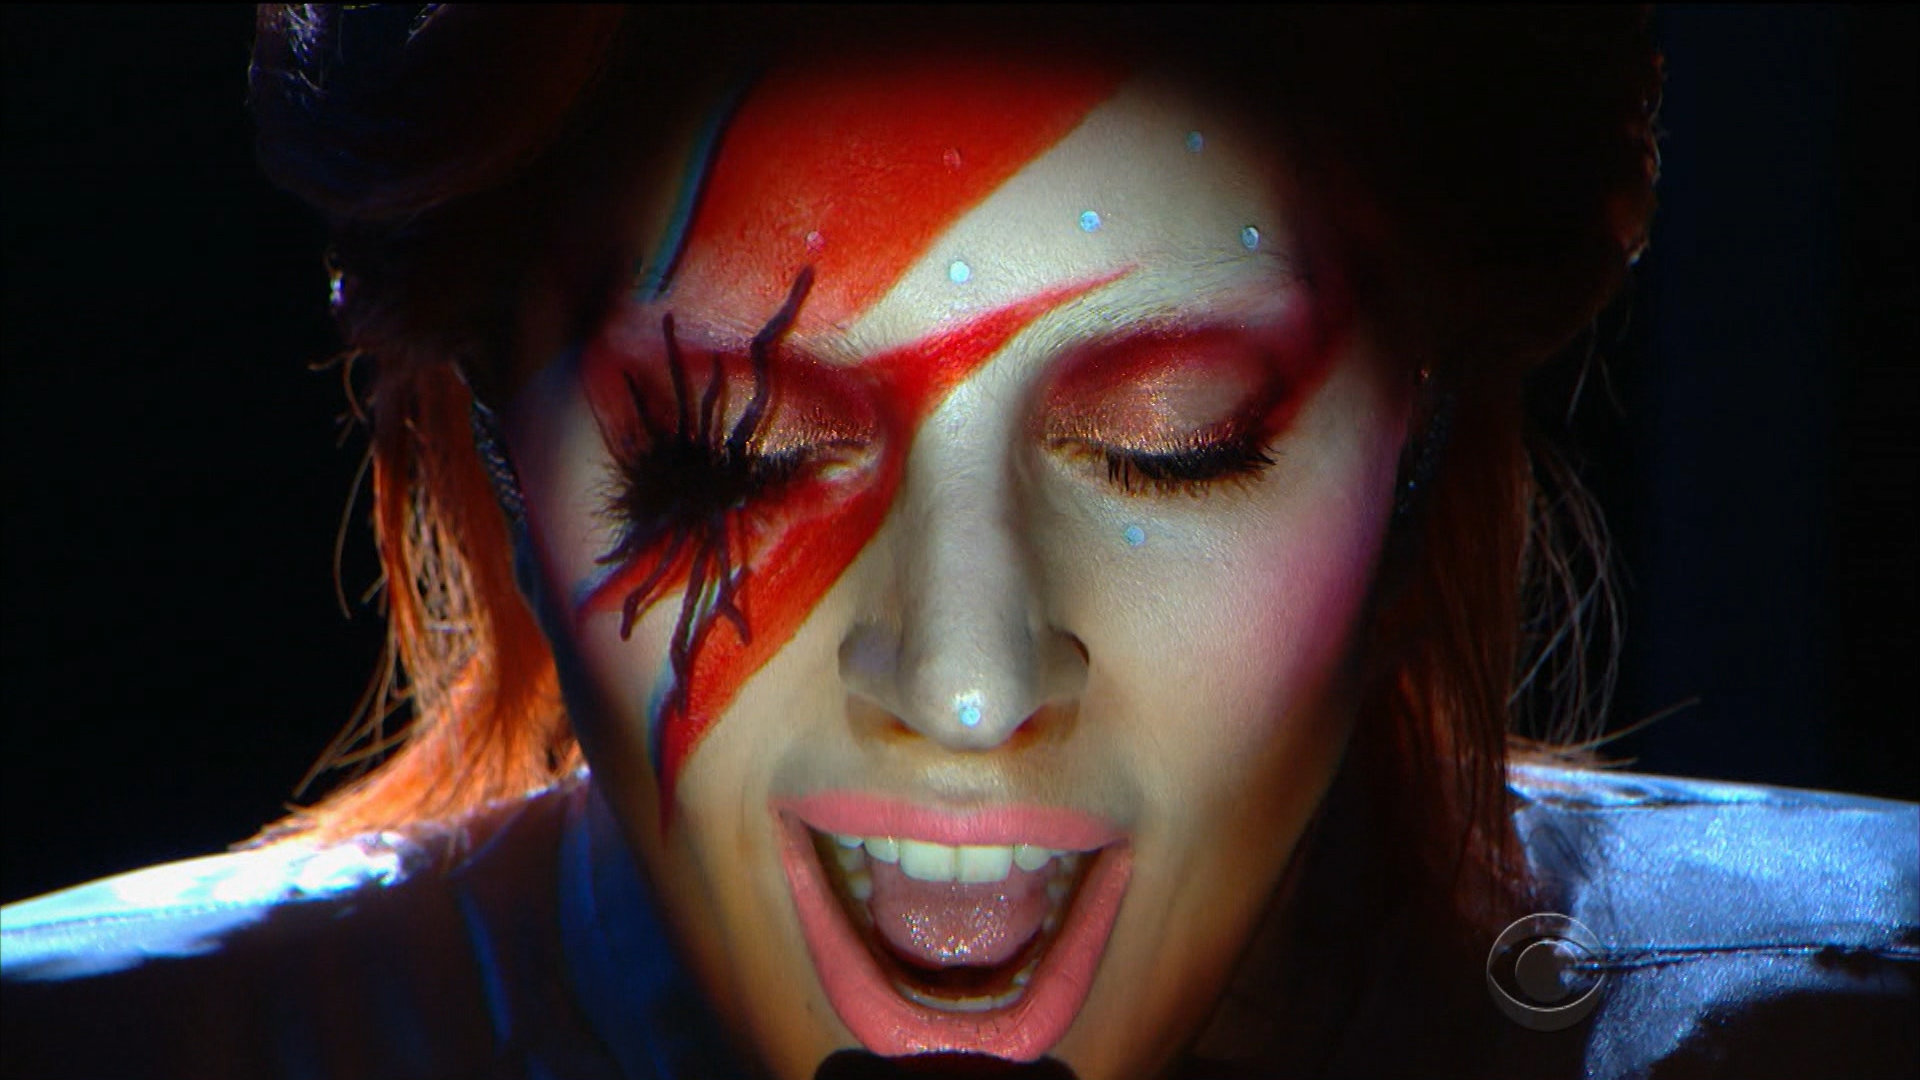 Lady Gaga embodied David Bowie during her tribute to him at the 58th GRAMMYs in 2016.